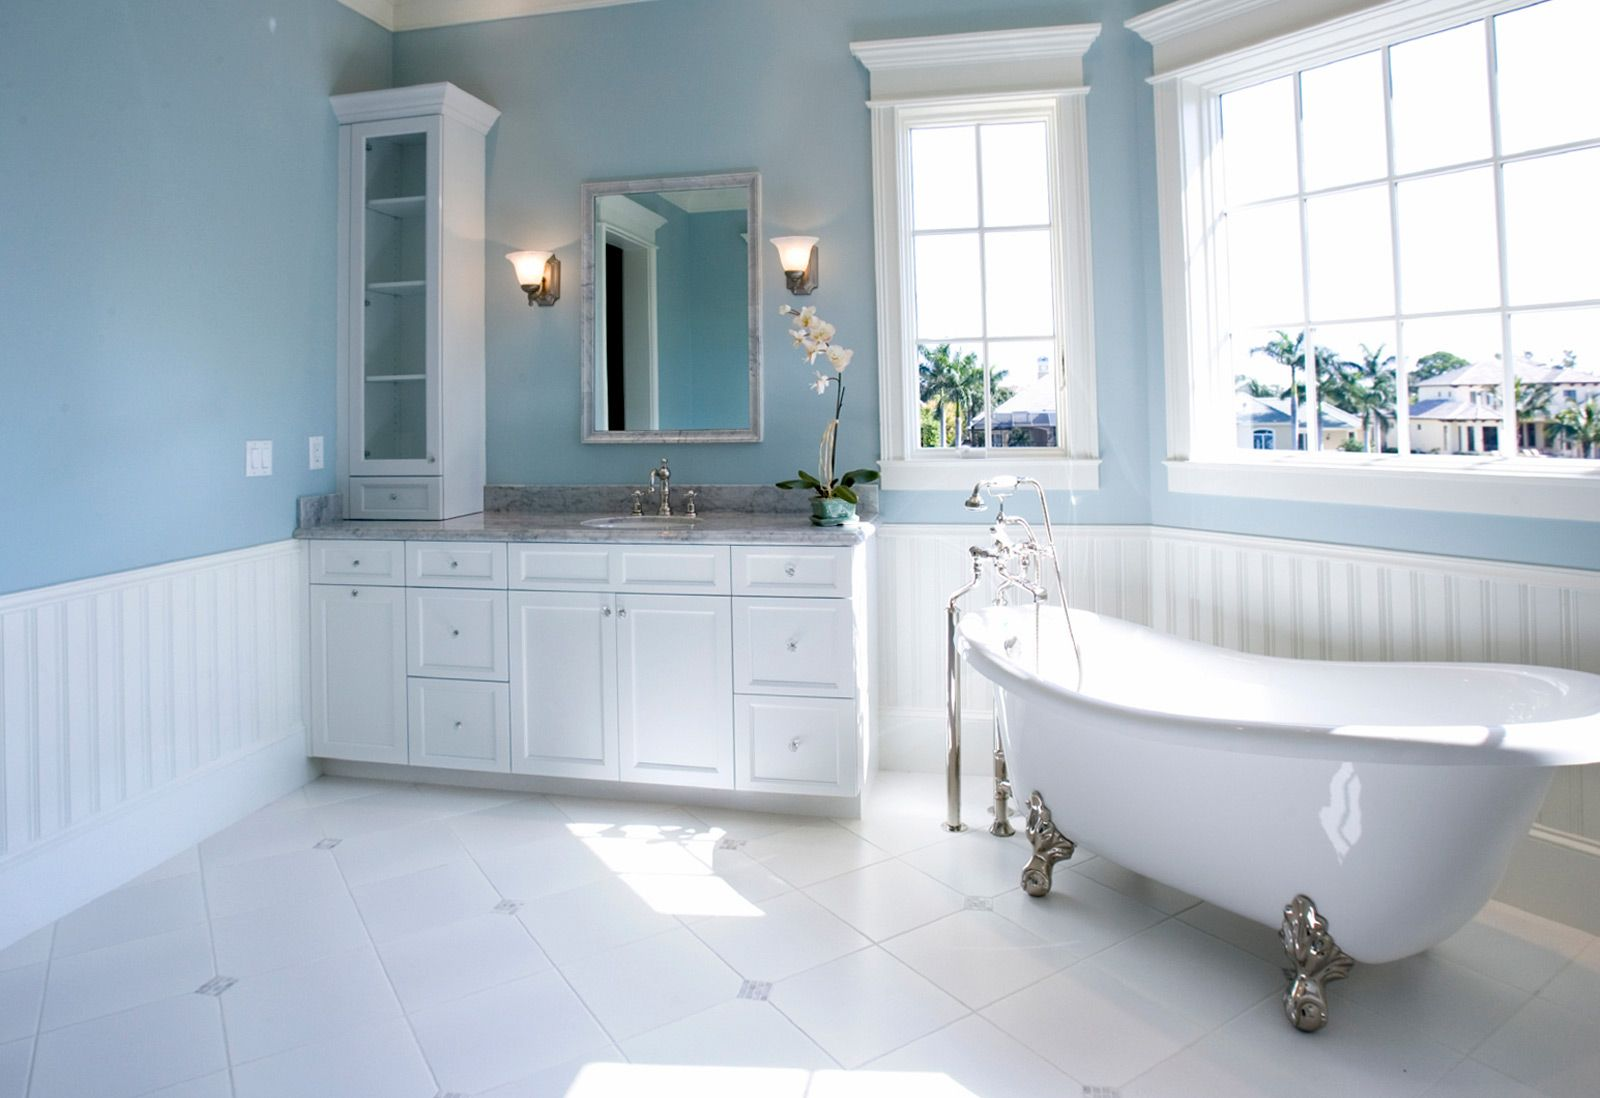 Give Me This Claw Foot Tub...and Everything In This Bathroom For That